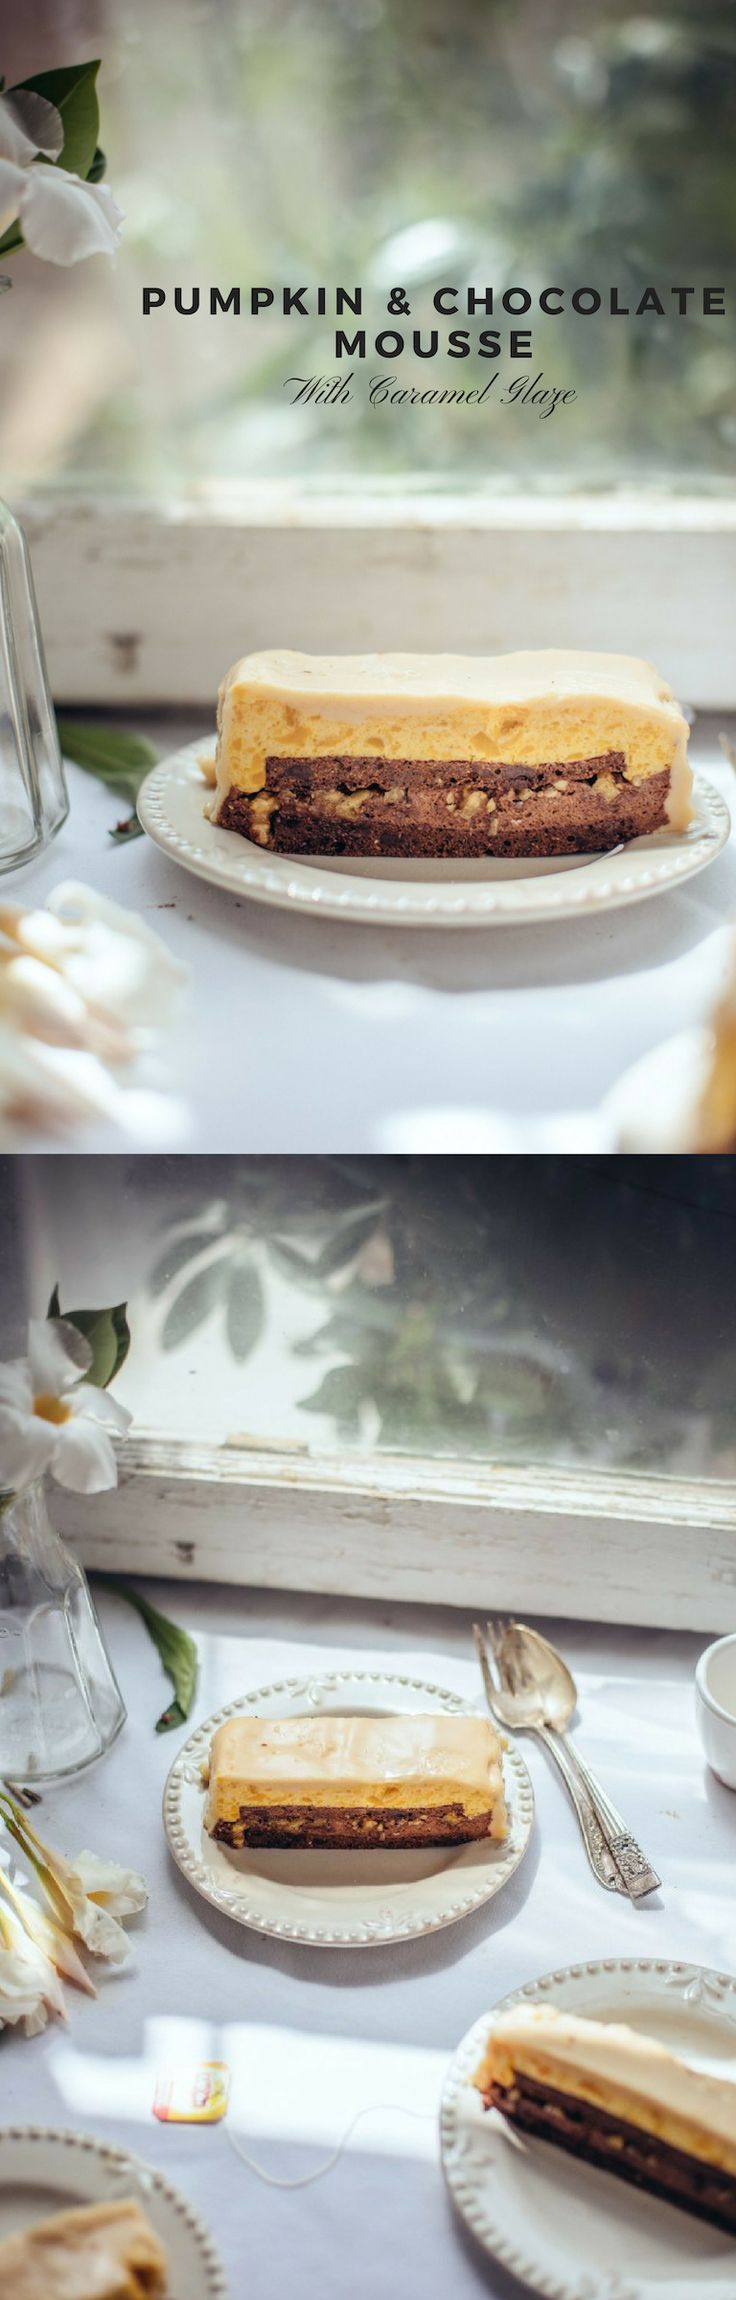 One layer of rich soft chocolate cake and one layer of heavy chocolate mousse, and the last layer is creamy pumpkin mous…